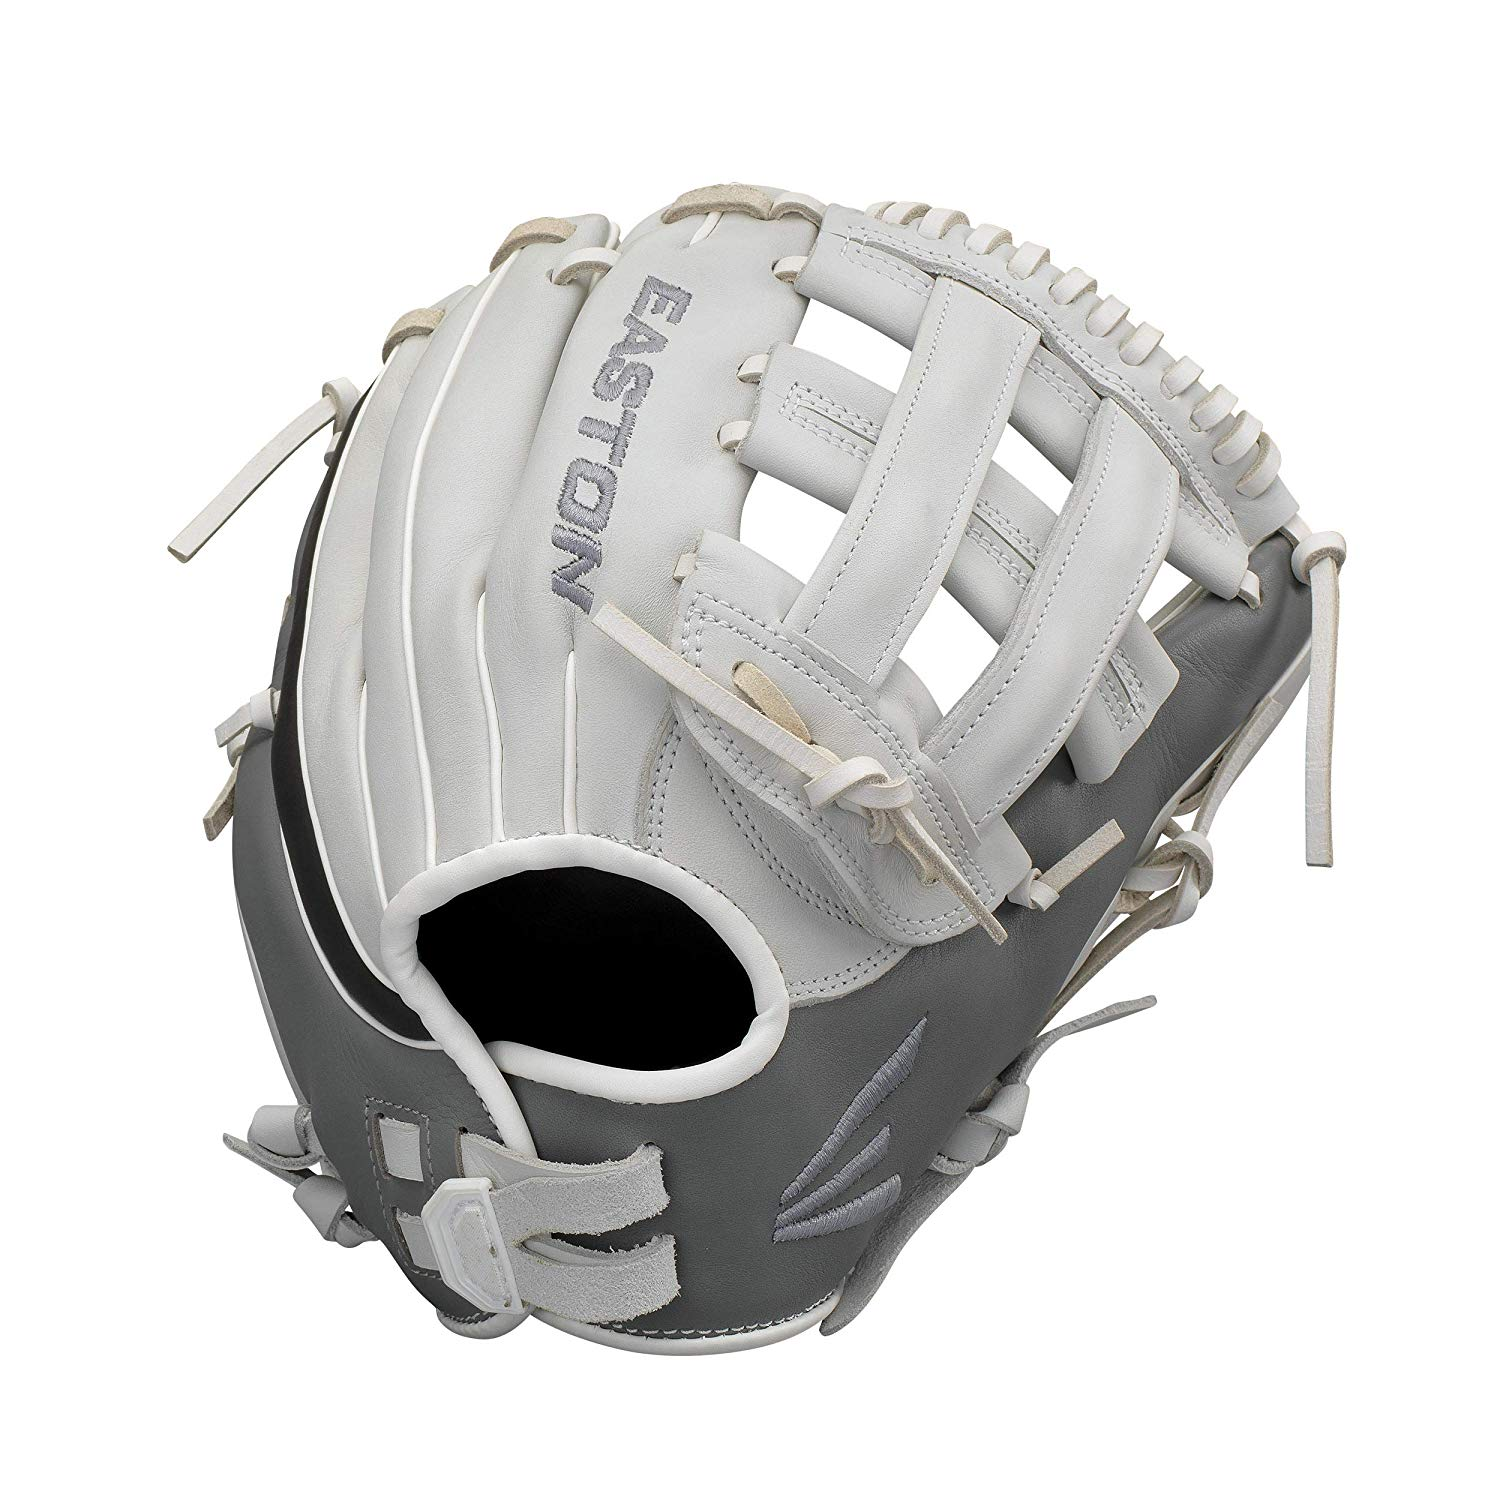 easton-ghost-fast-pitch-softball-glove-11-75-right-hand-throw GH1176FP-RightHandThrow Easton 628412269978 Premium Steer USA leather Quantum Closure SystemTM provides adjustable hand opening